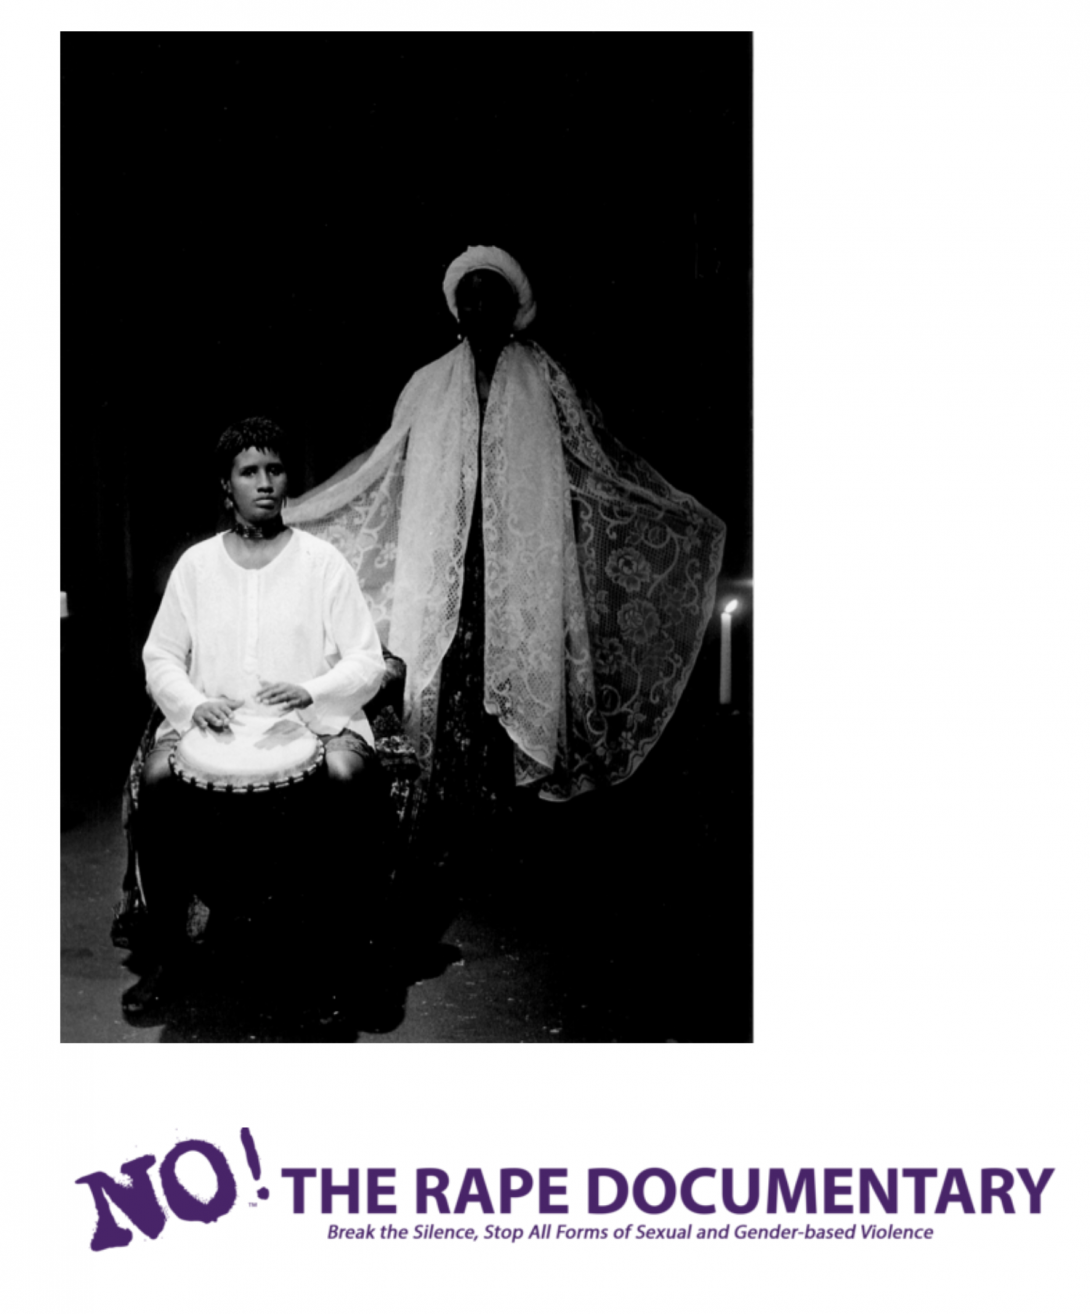 A black and white, still image from the film showing a Black person in a white tunic sitting and playing a drum with their hands, and another person in a lacy white cape standing behind them with their arms partially outstretched.